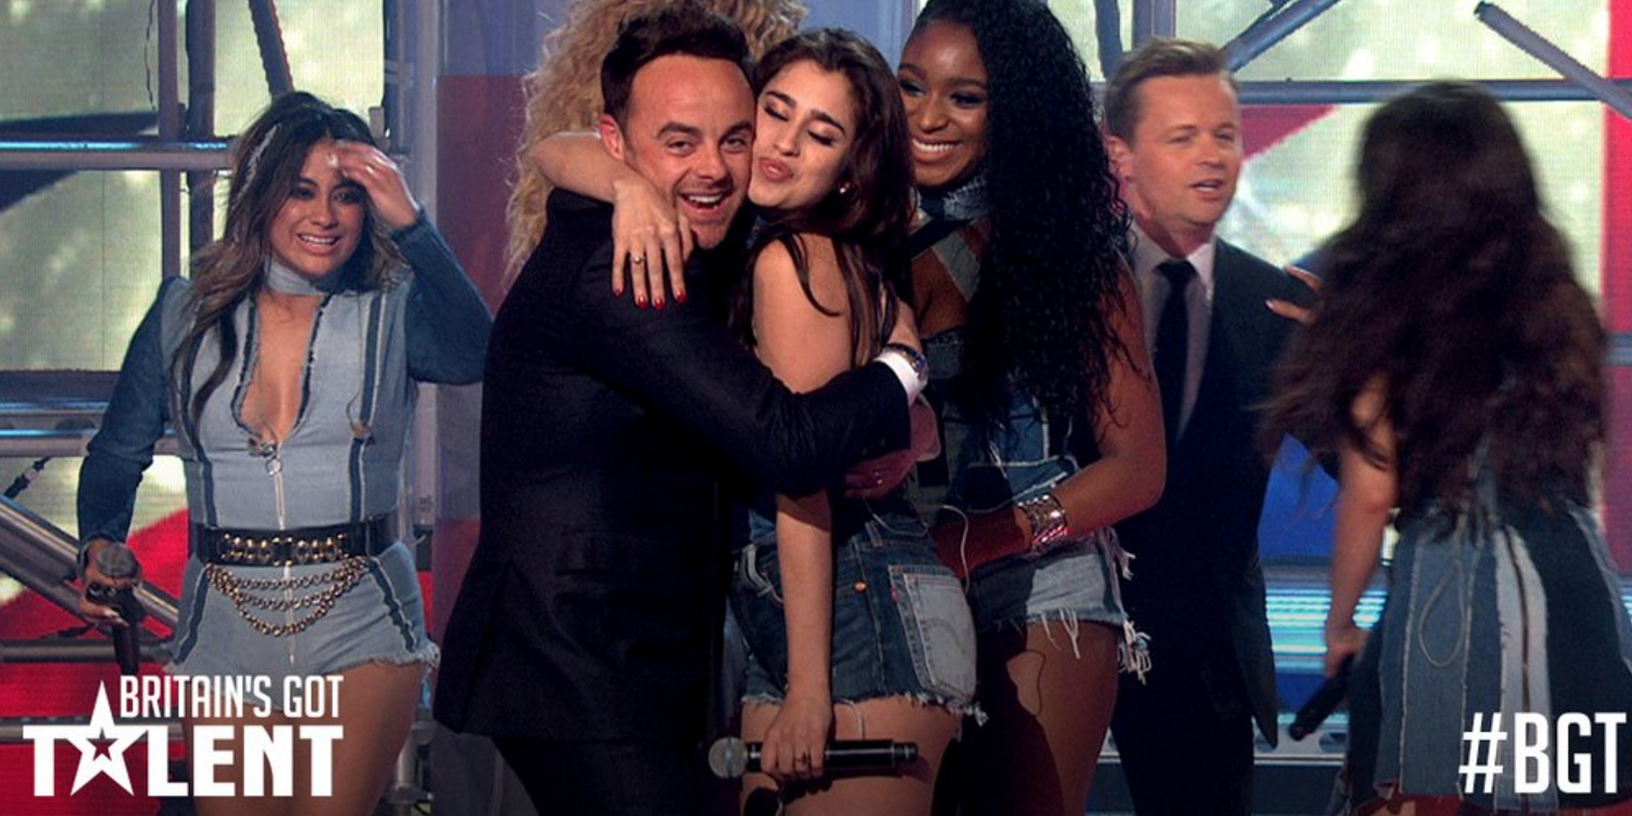 Britain's Got Talent: Watch Fifth Harmony rock your world with a live semi-final performance